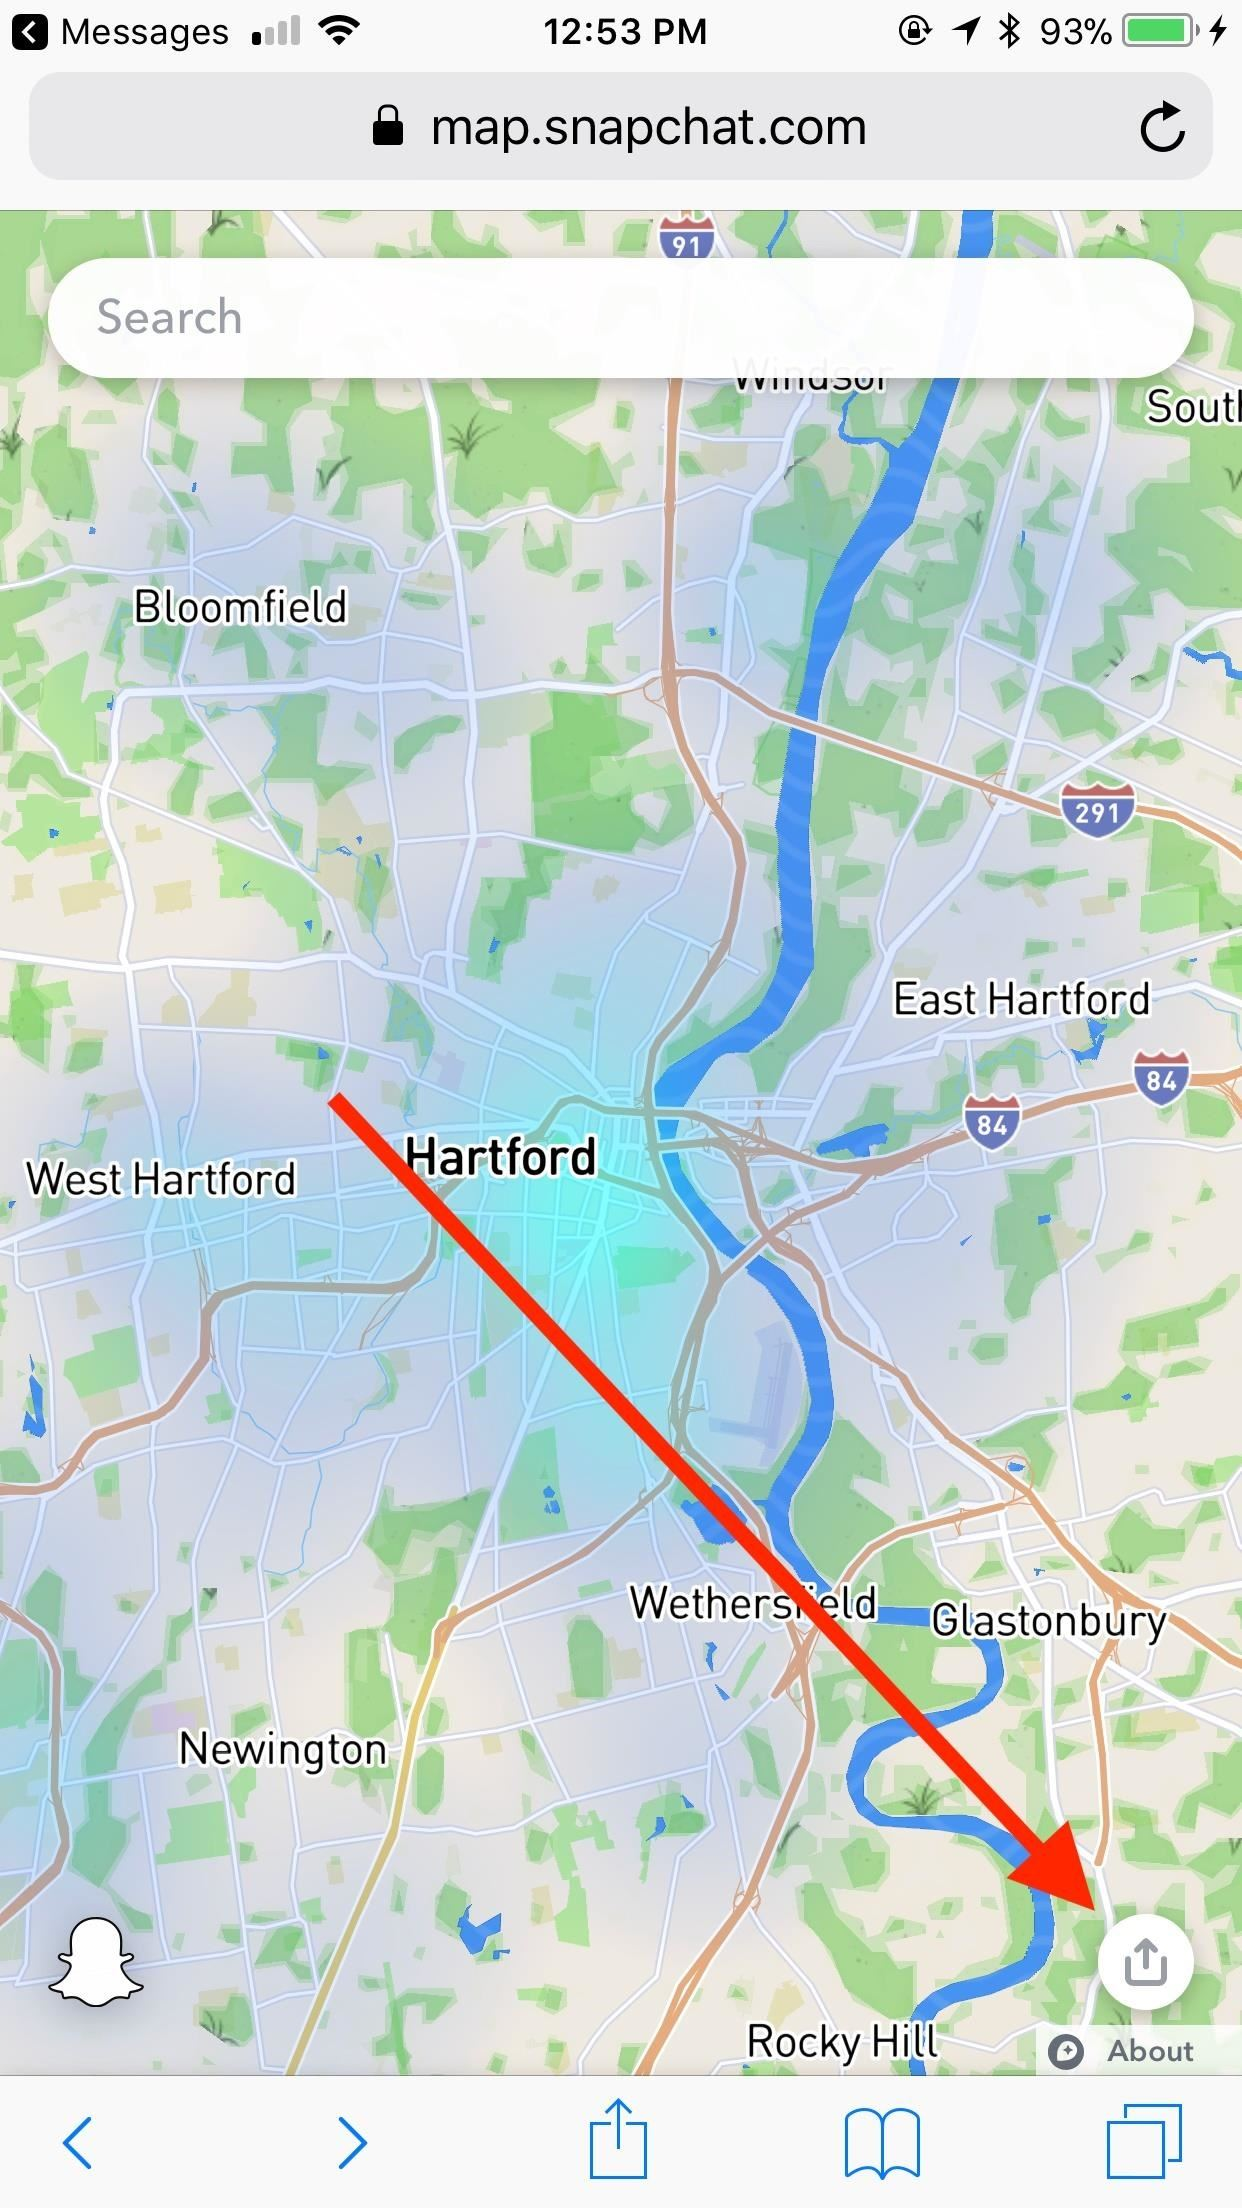 Snapchat 101: How to Use the Snap Map Without an Account